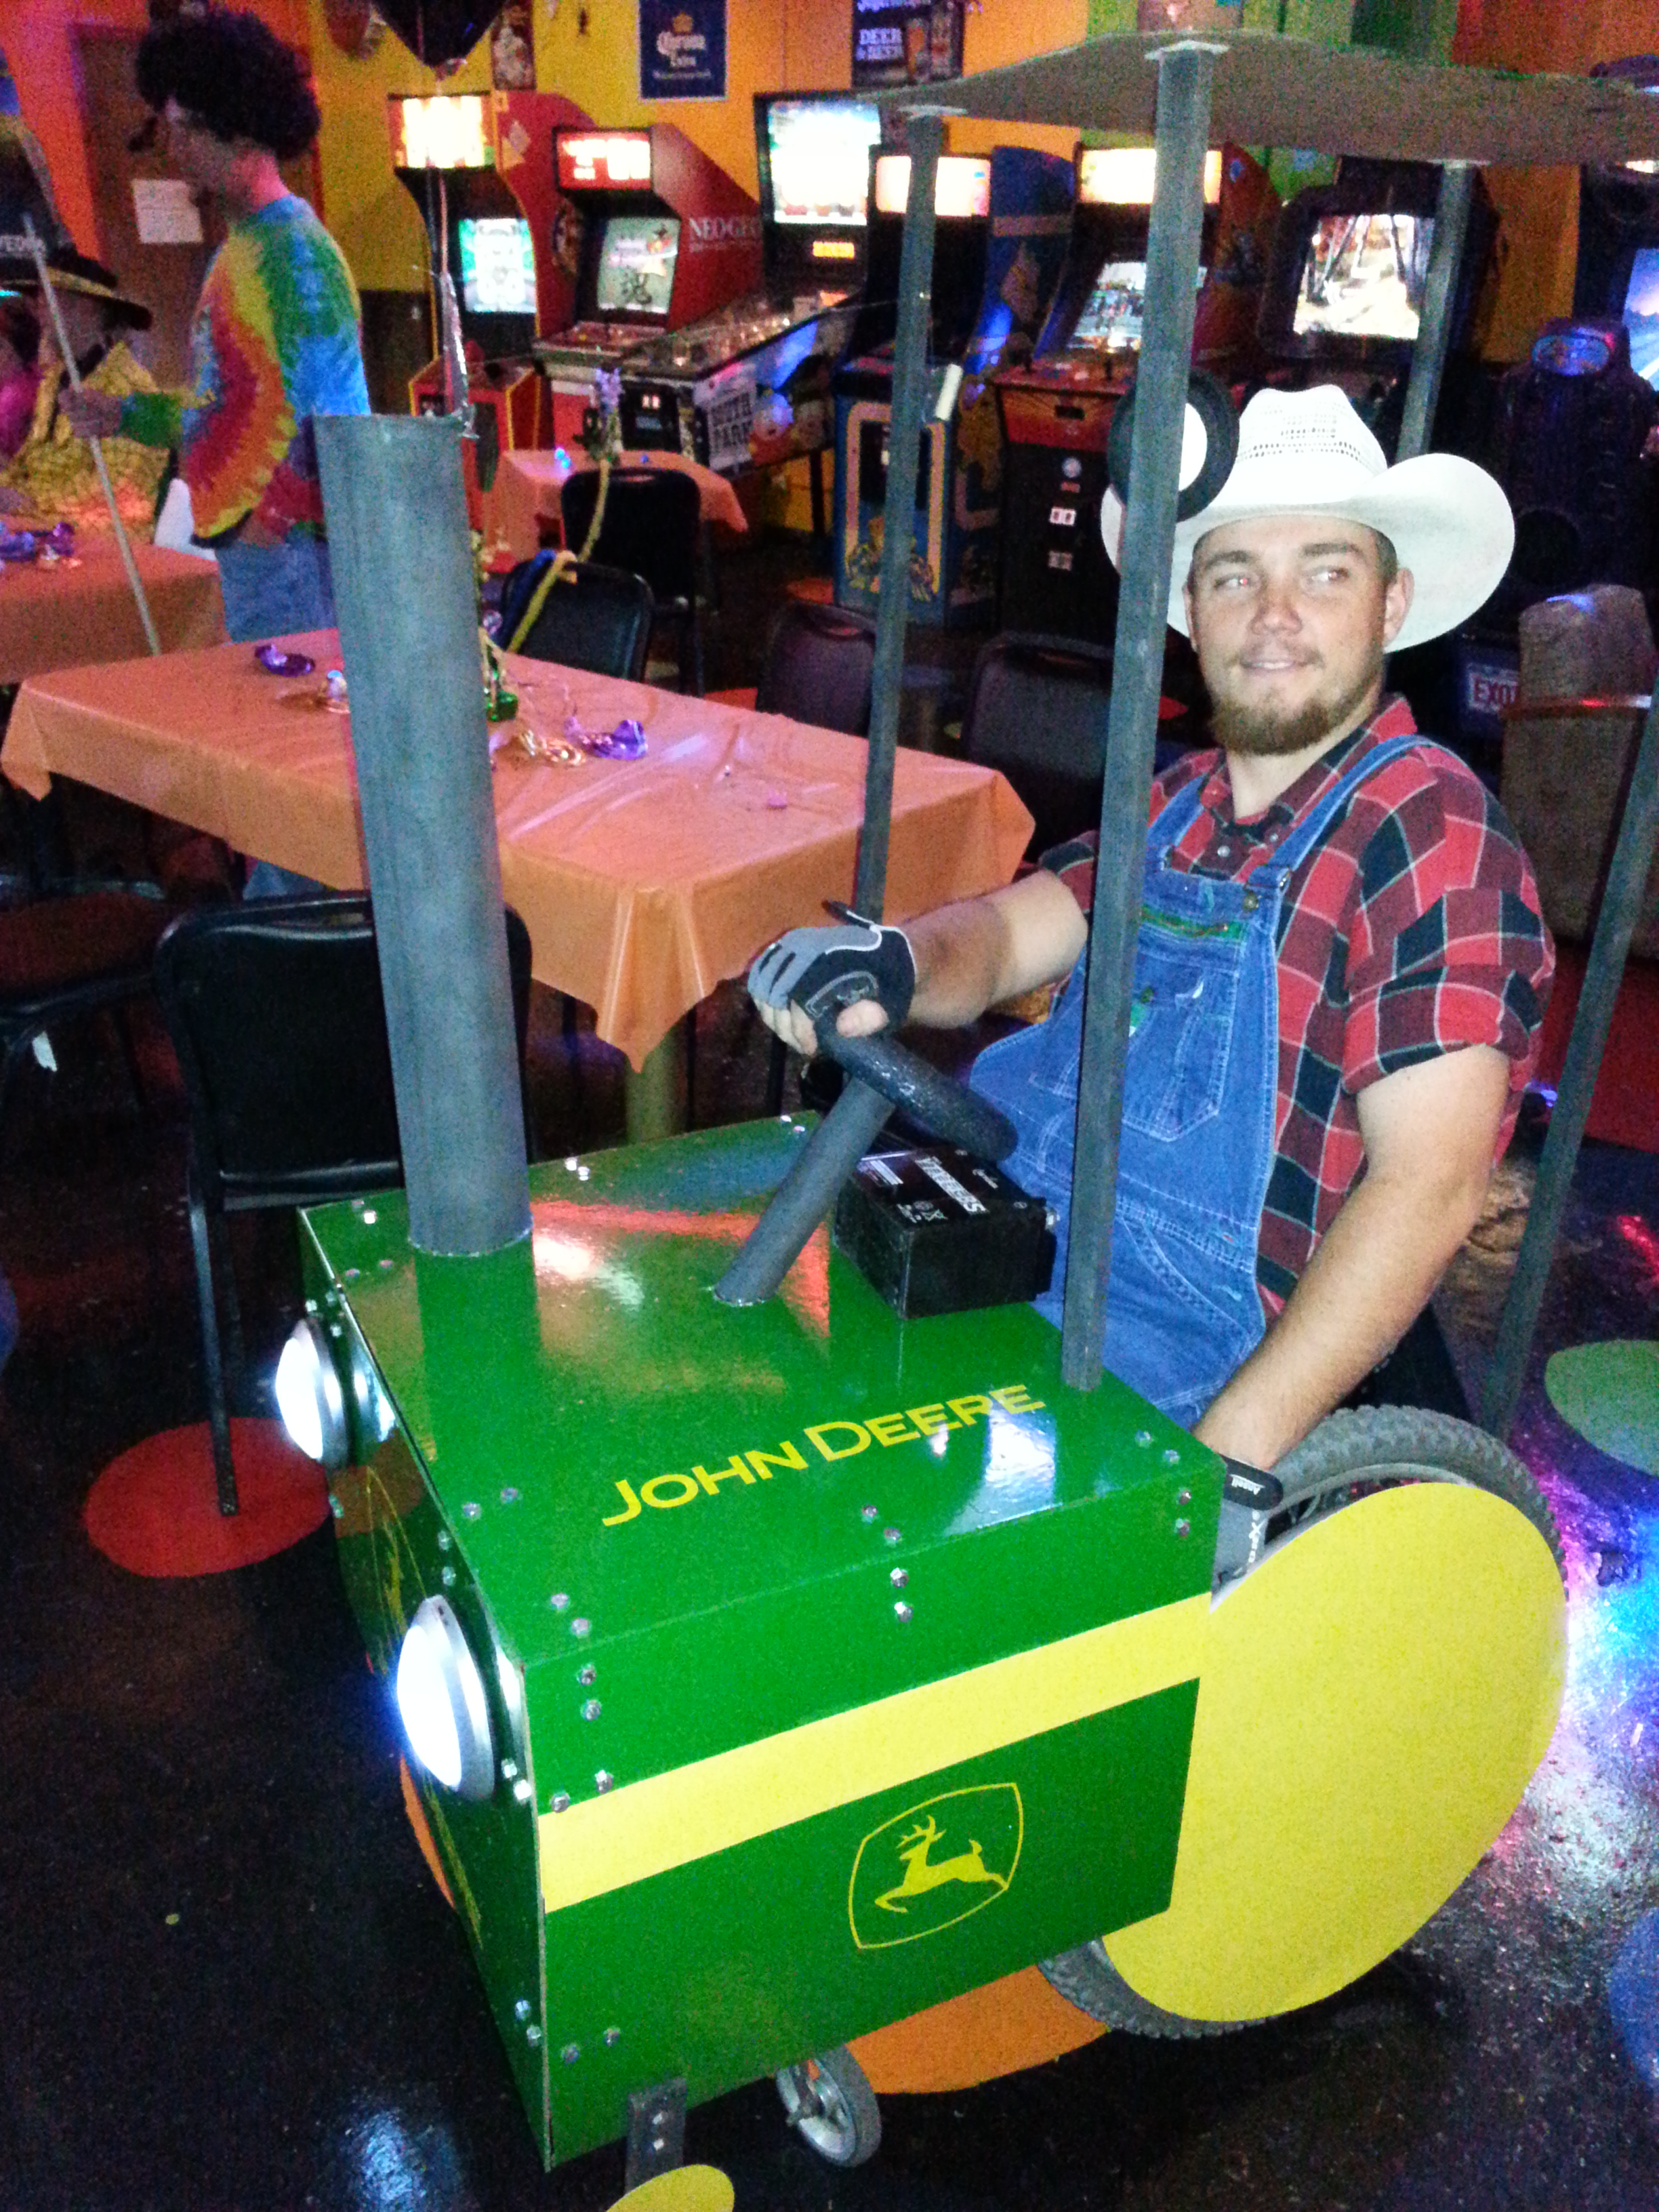 best costume farmer riding a tractor farmer riding tractor - Daisy Dukes Halloween Costume